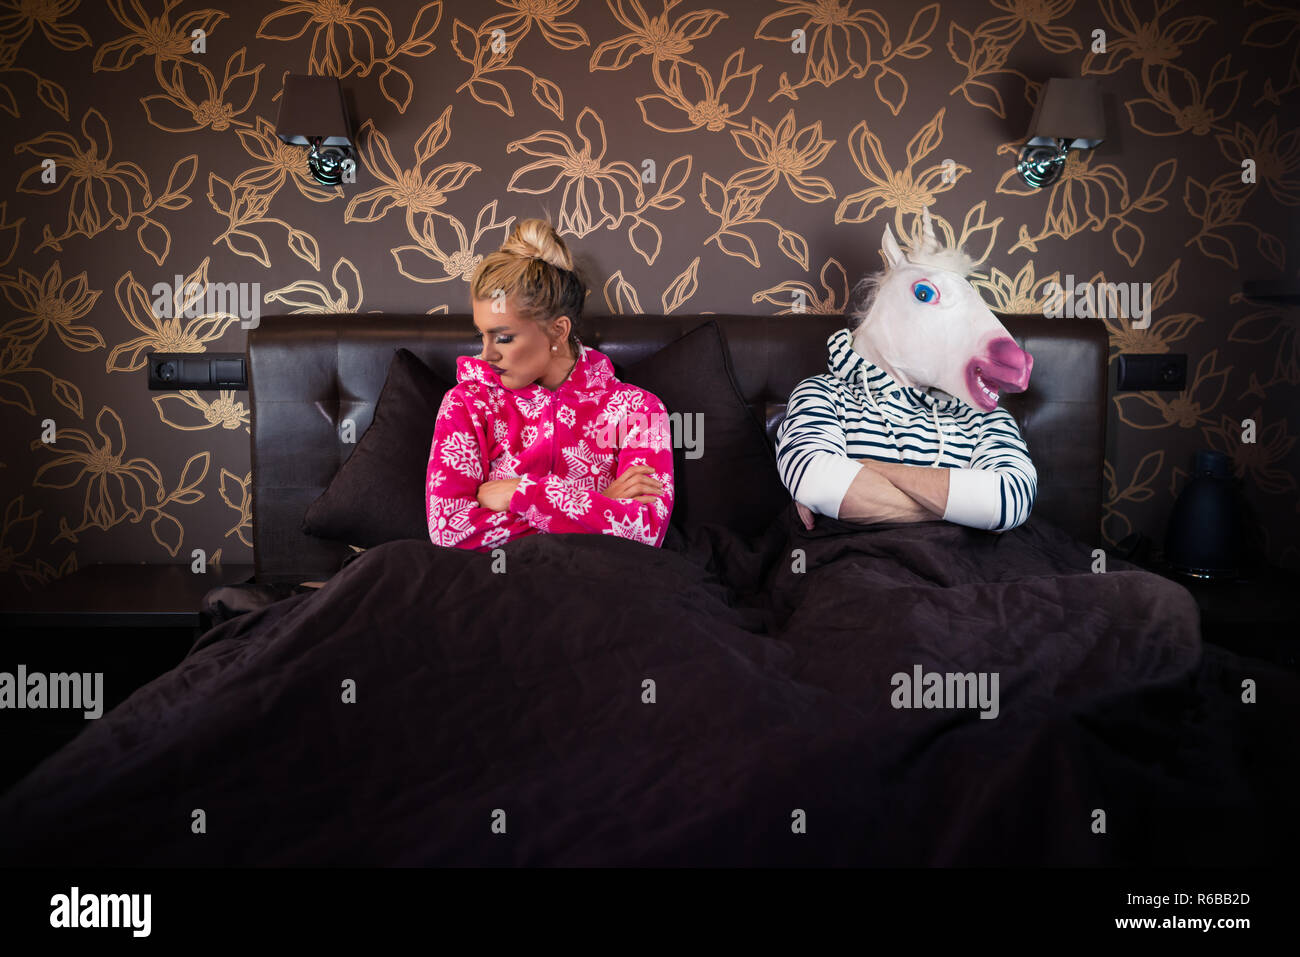 Unusual couple has relationship problems. Beautiful young woman in pajama on the bed with strange boyfriend in freaky mask in stylish apartments. - Stock Image